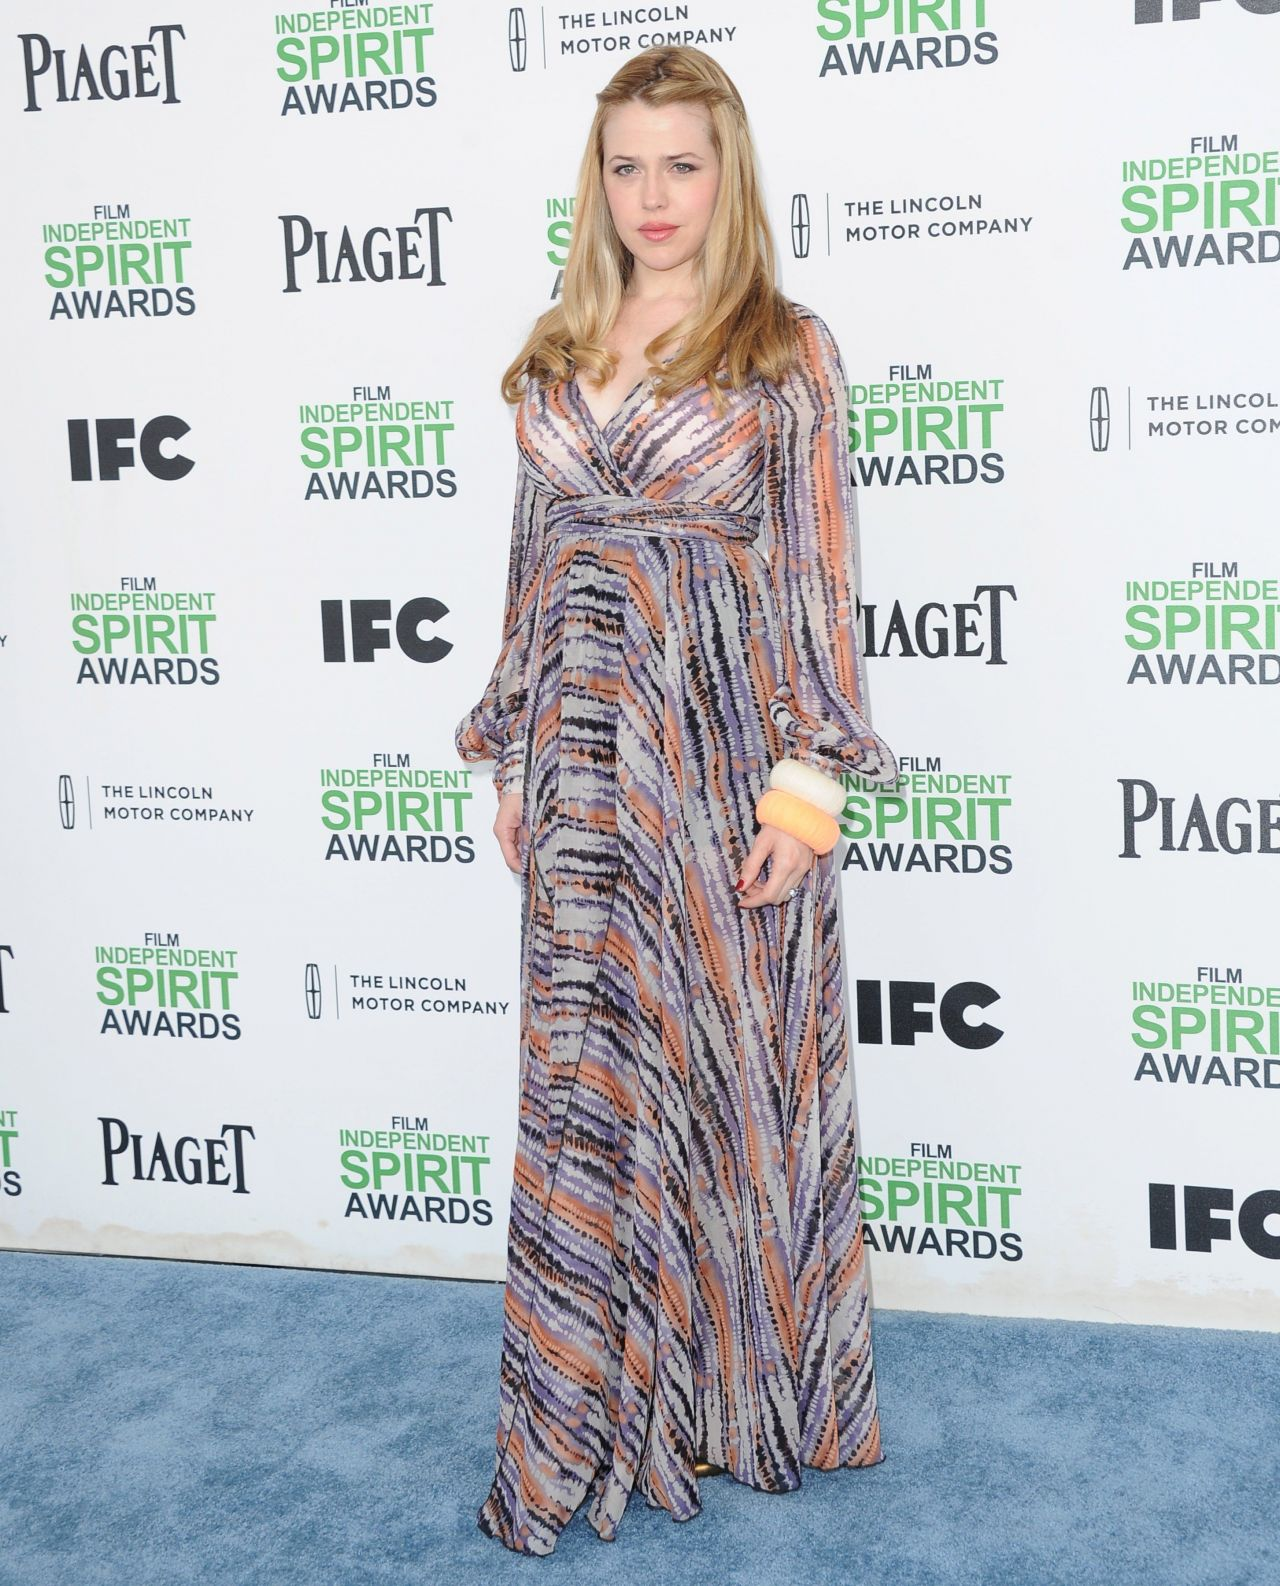 Majandra Delfino - 2014 Film Independent Spirit Awards